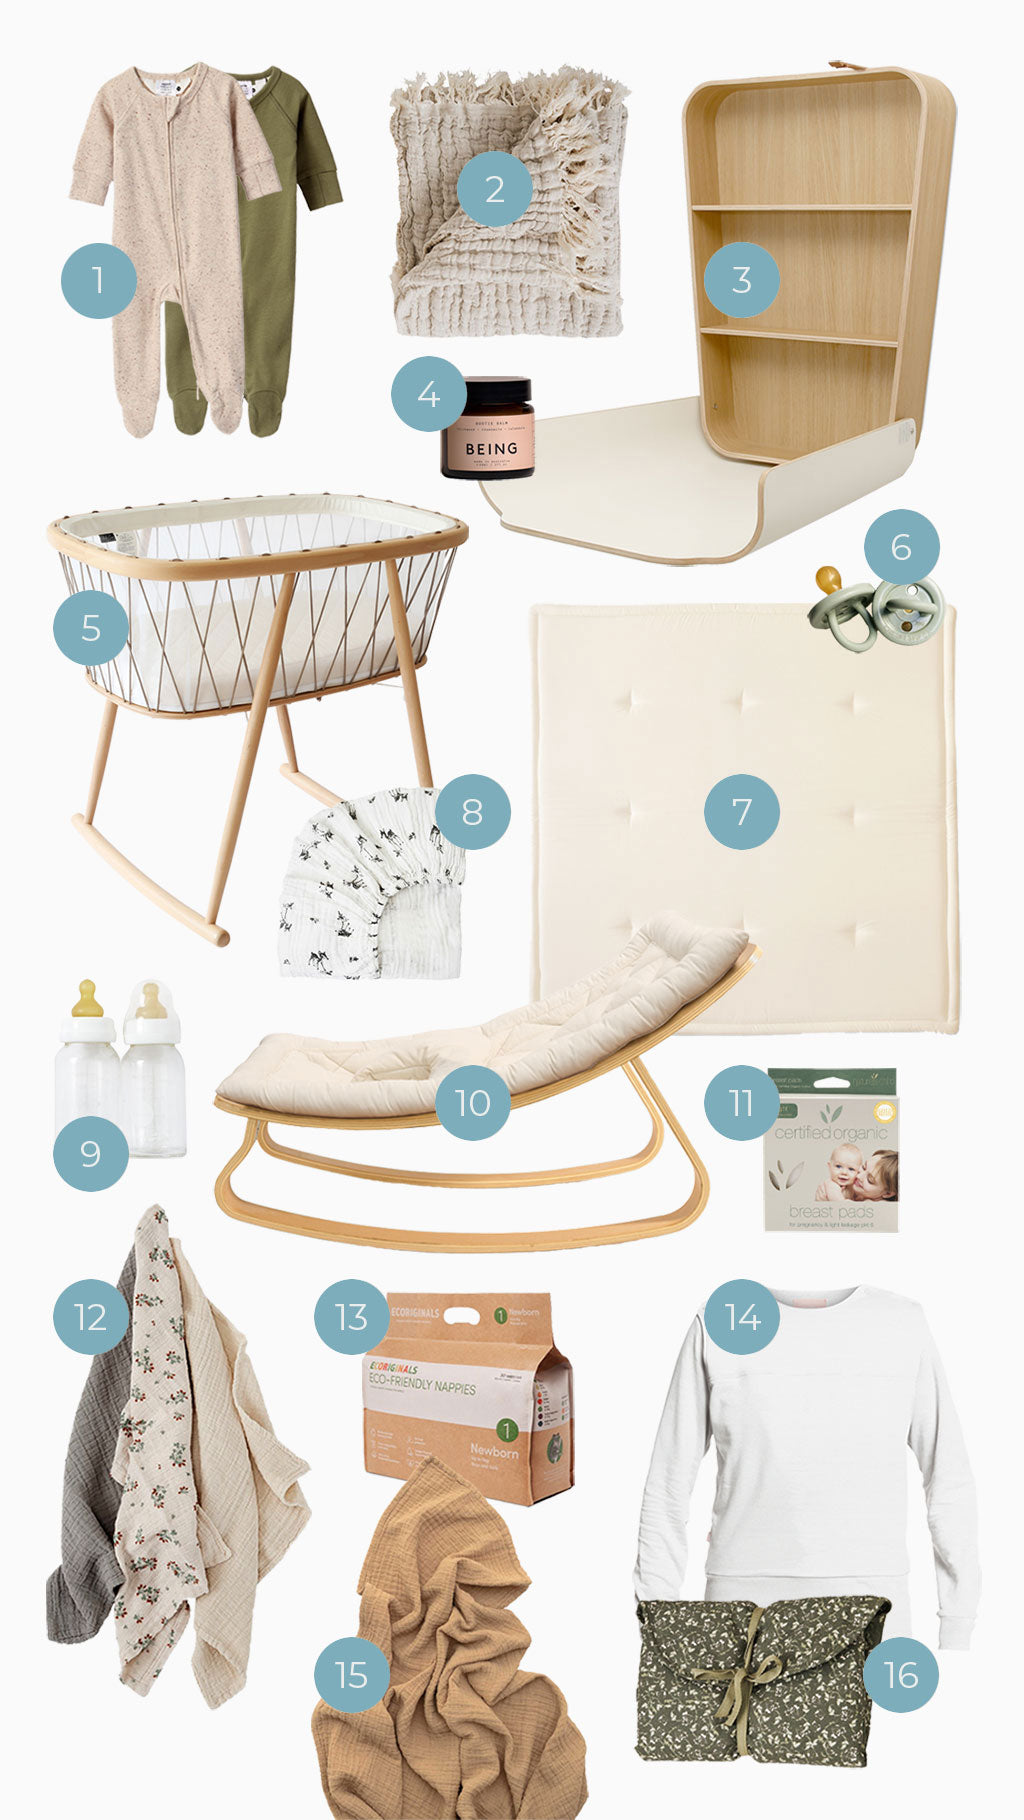 Newborn Essentials Flay Lay featuring the sustainable selection of baby products mentioned in the blog post